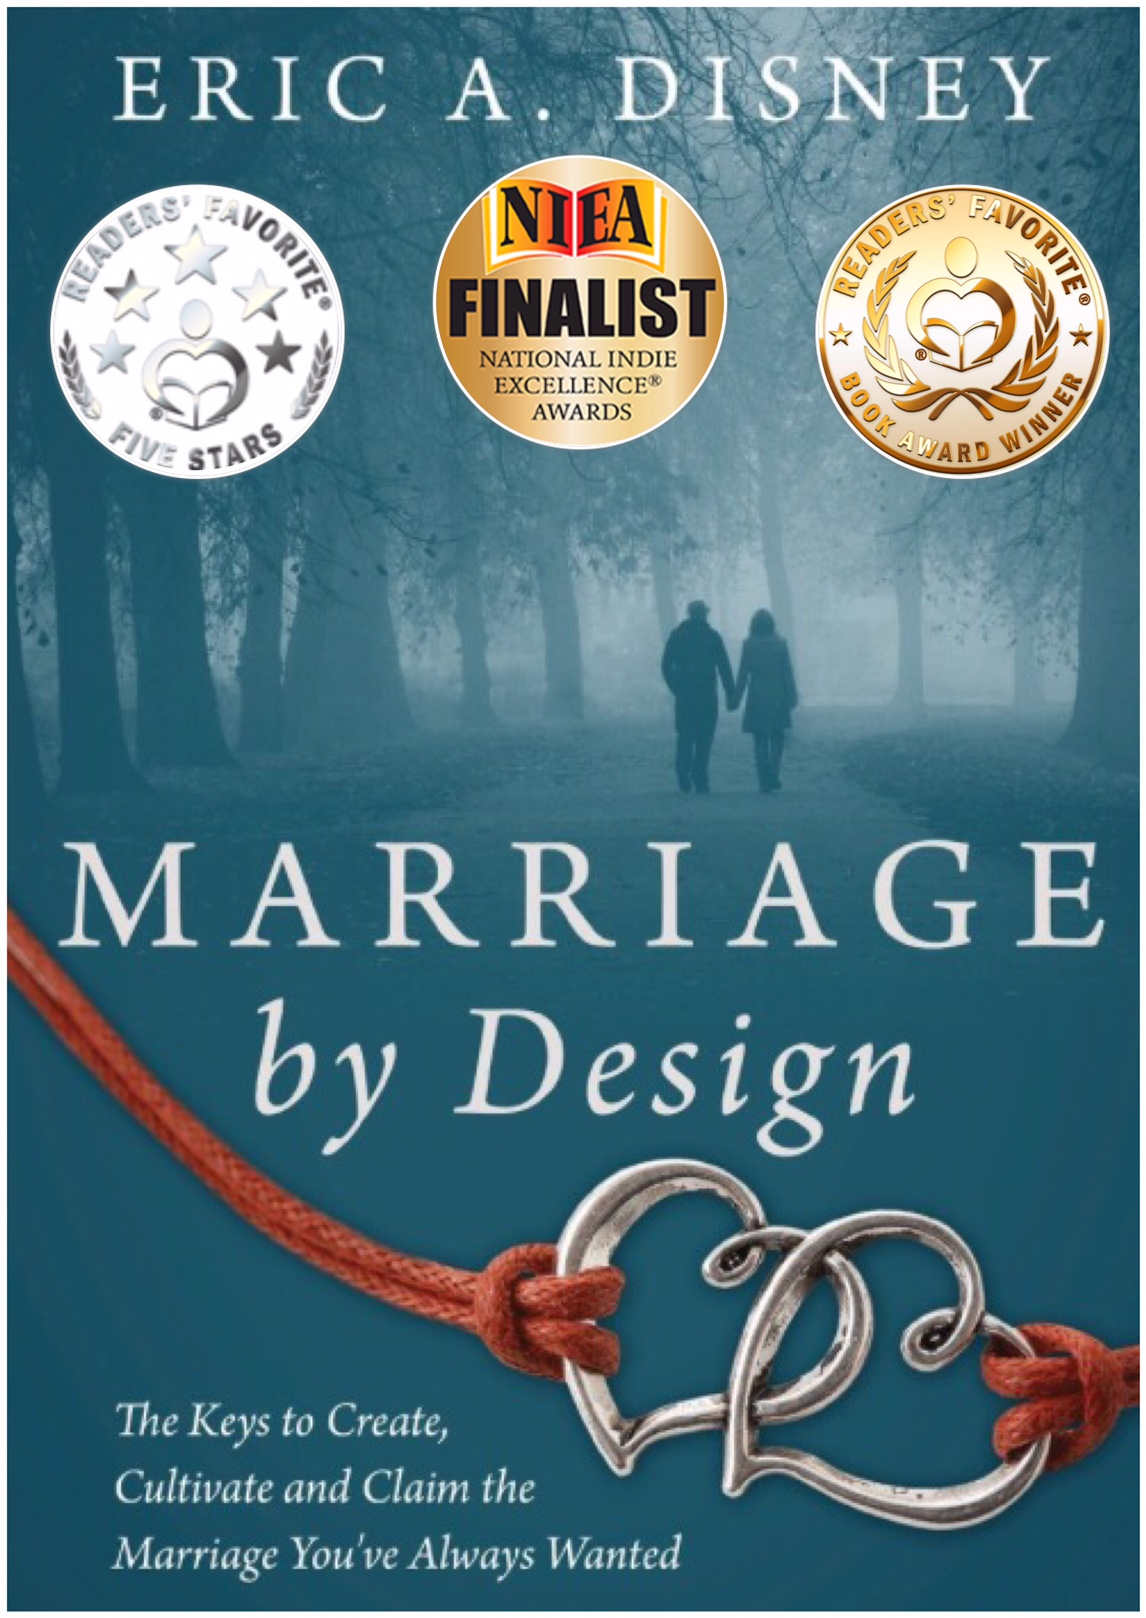 Mbd book cover awards